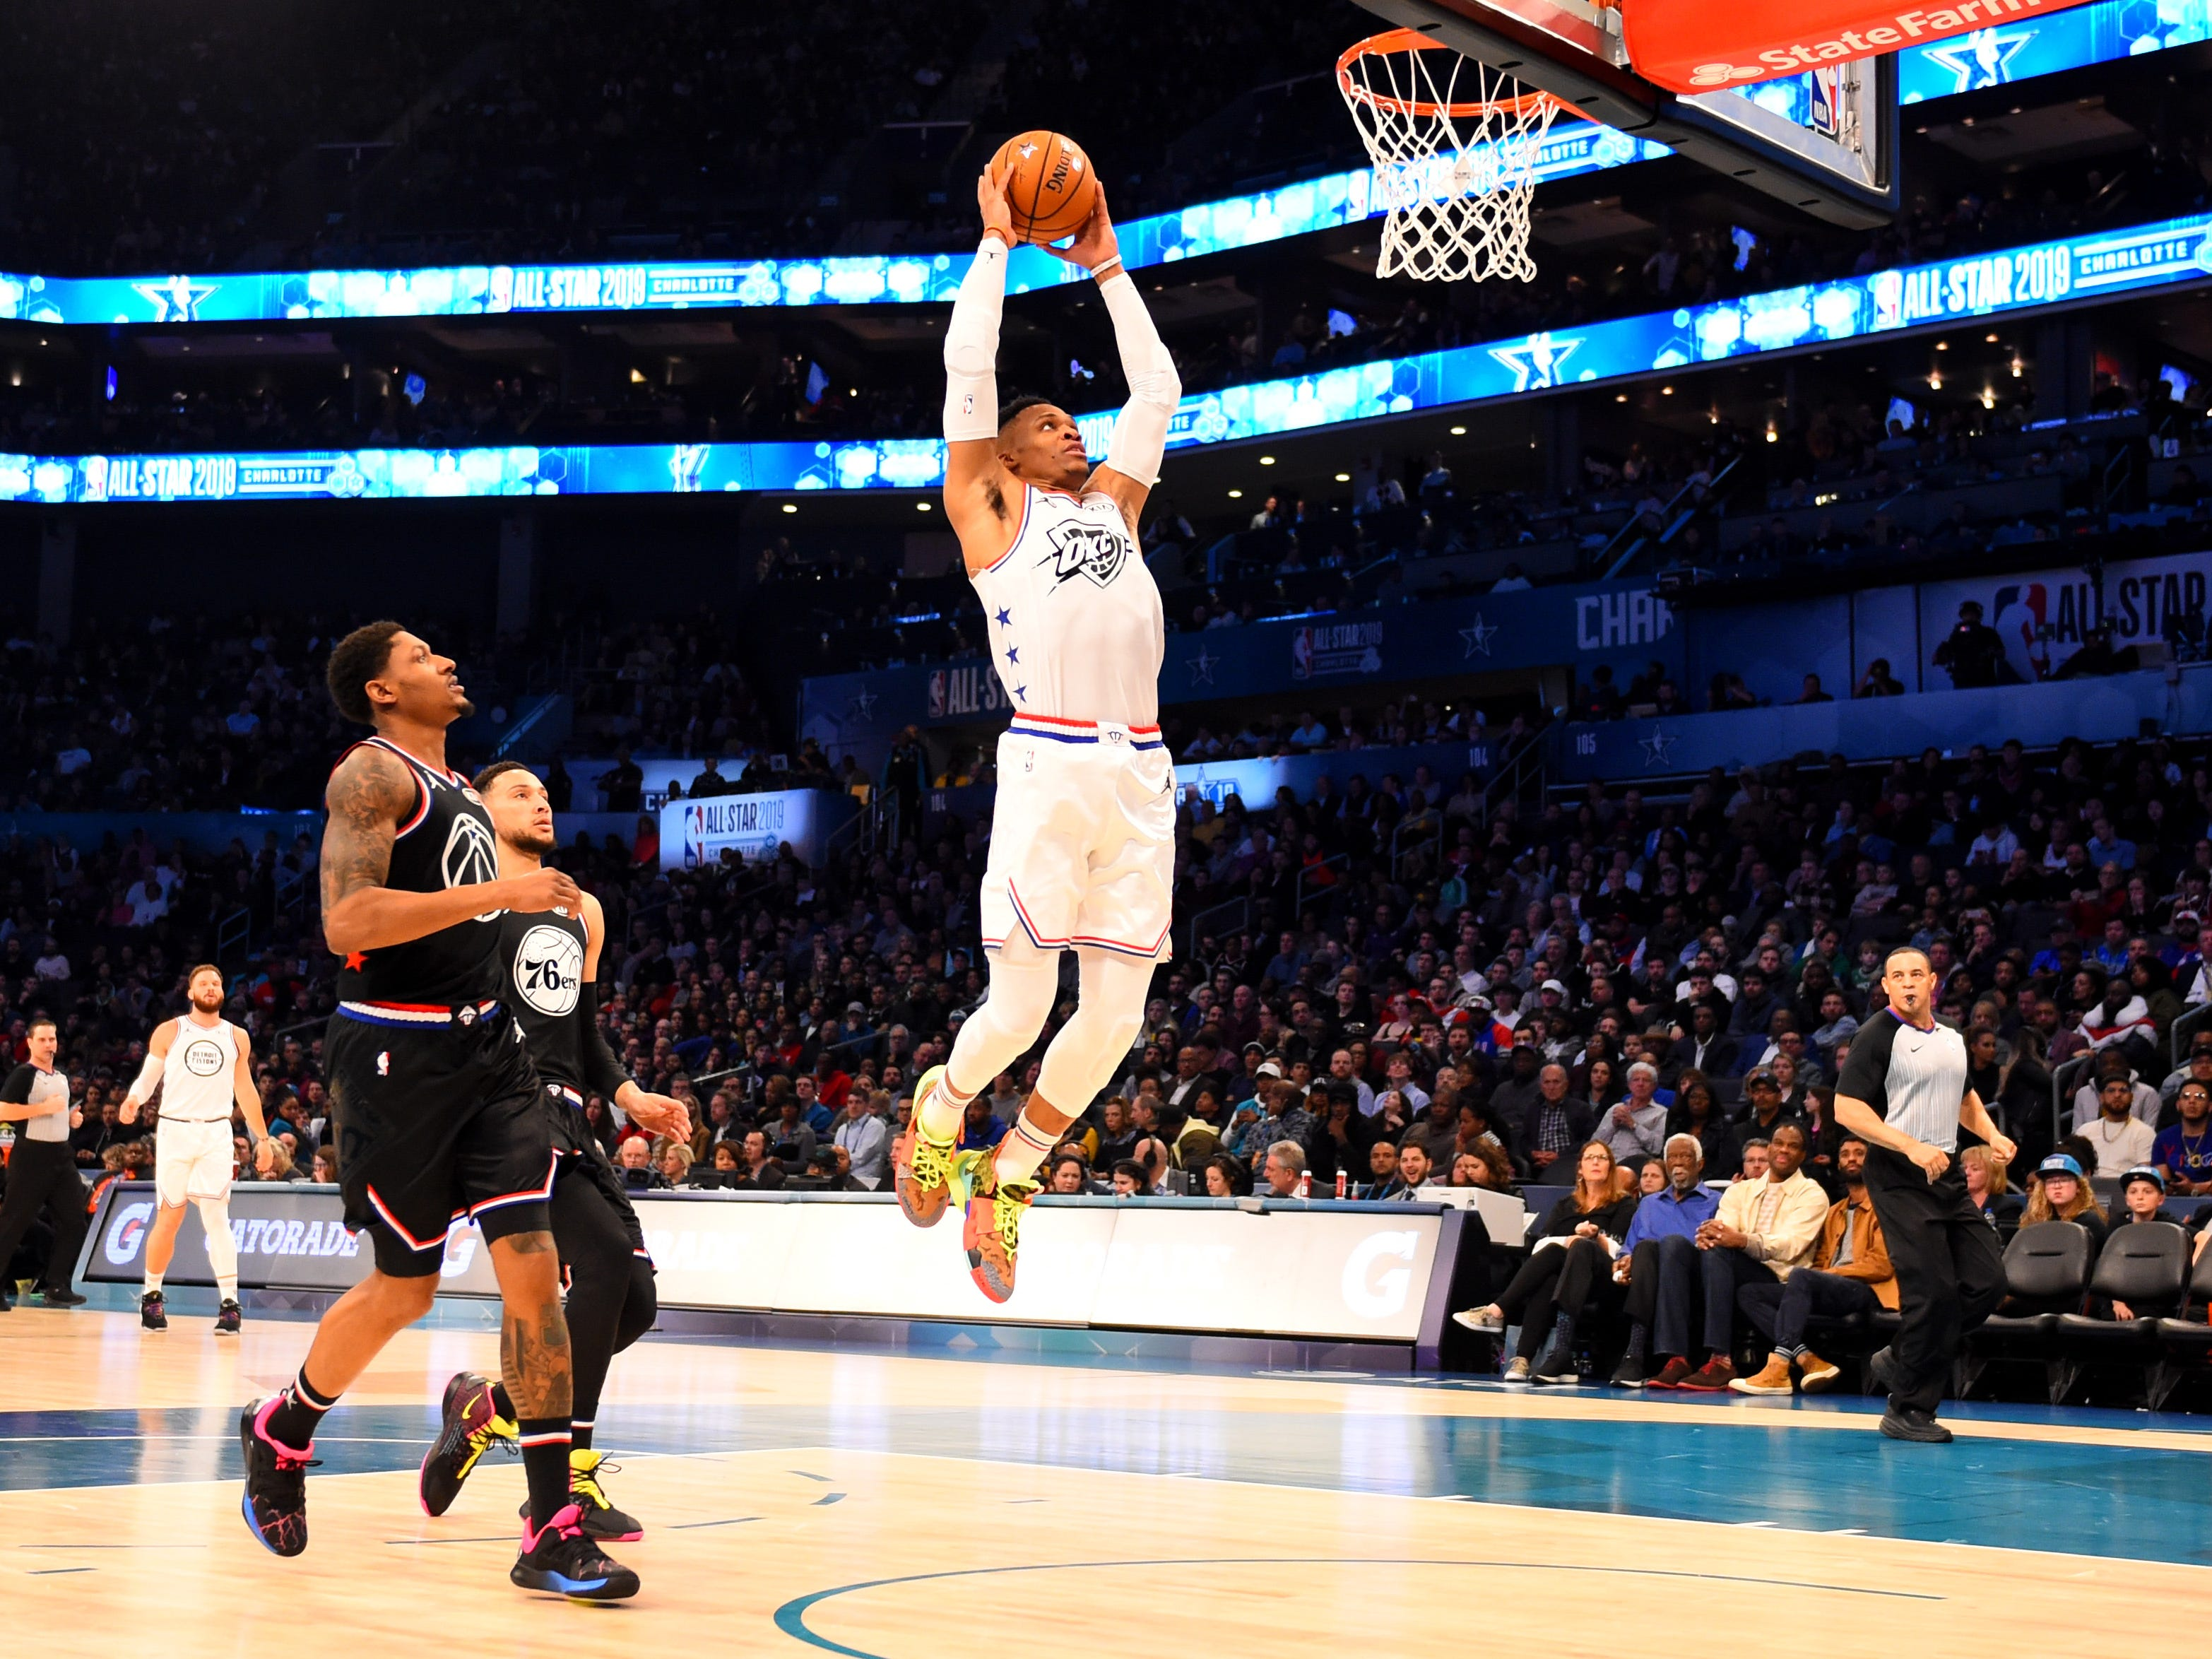 Russell Westbrook goes up for a dunk during the All-Star Game.